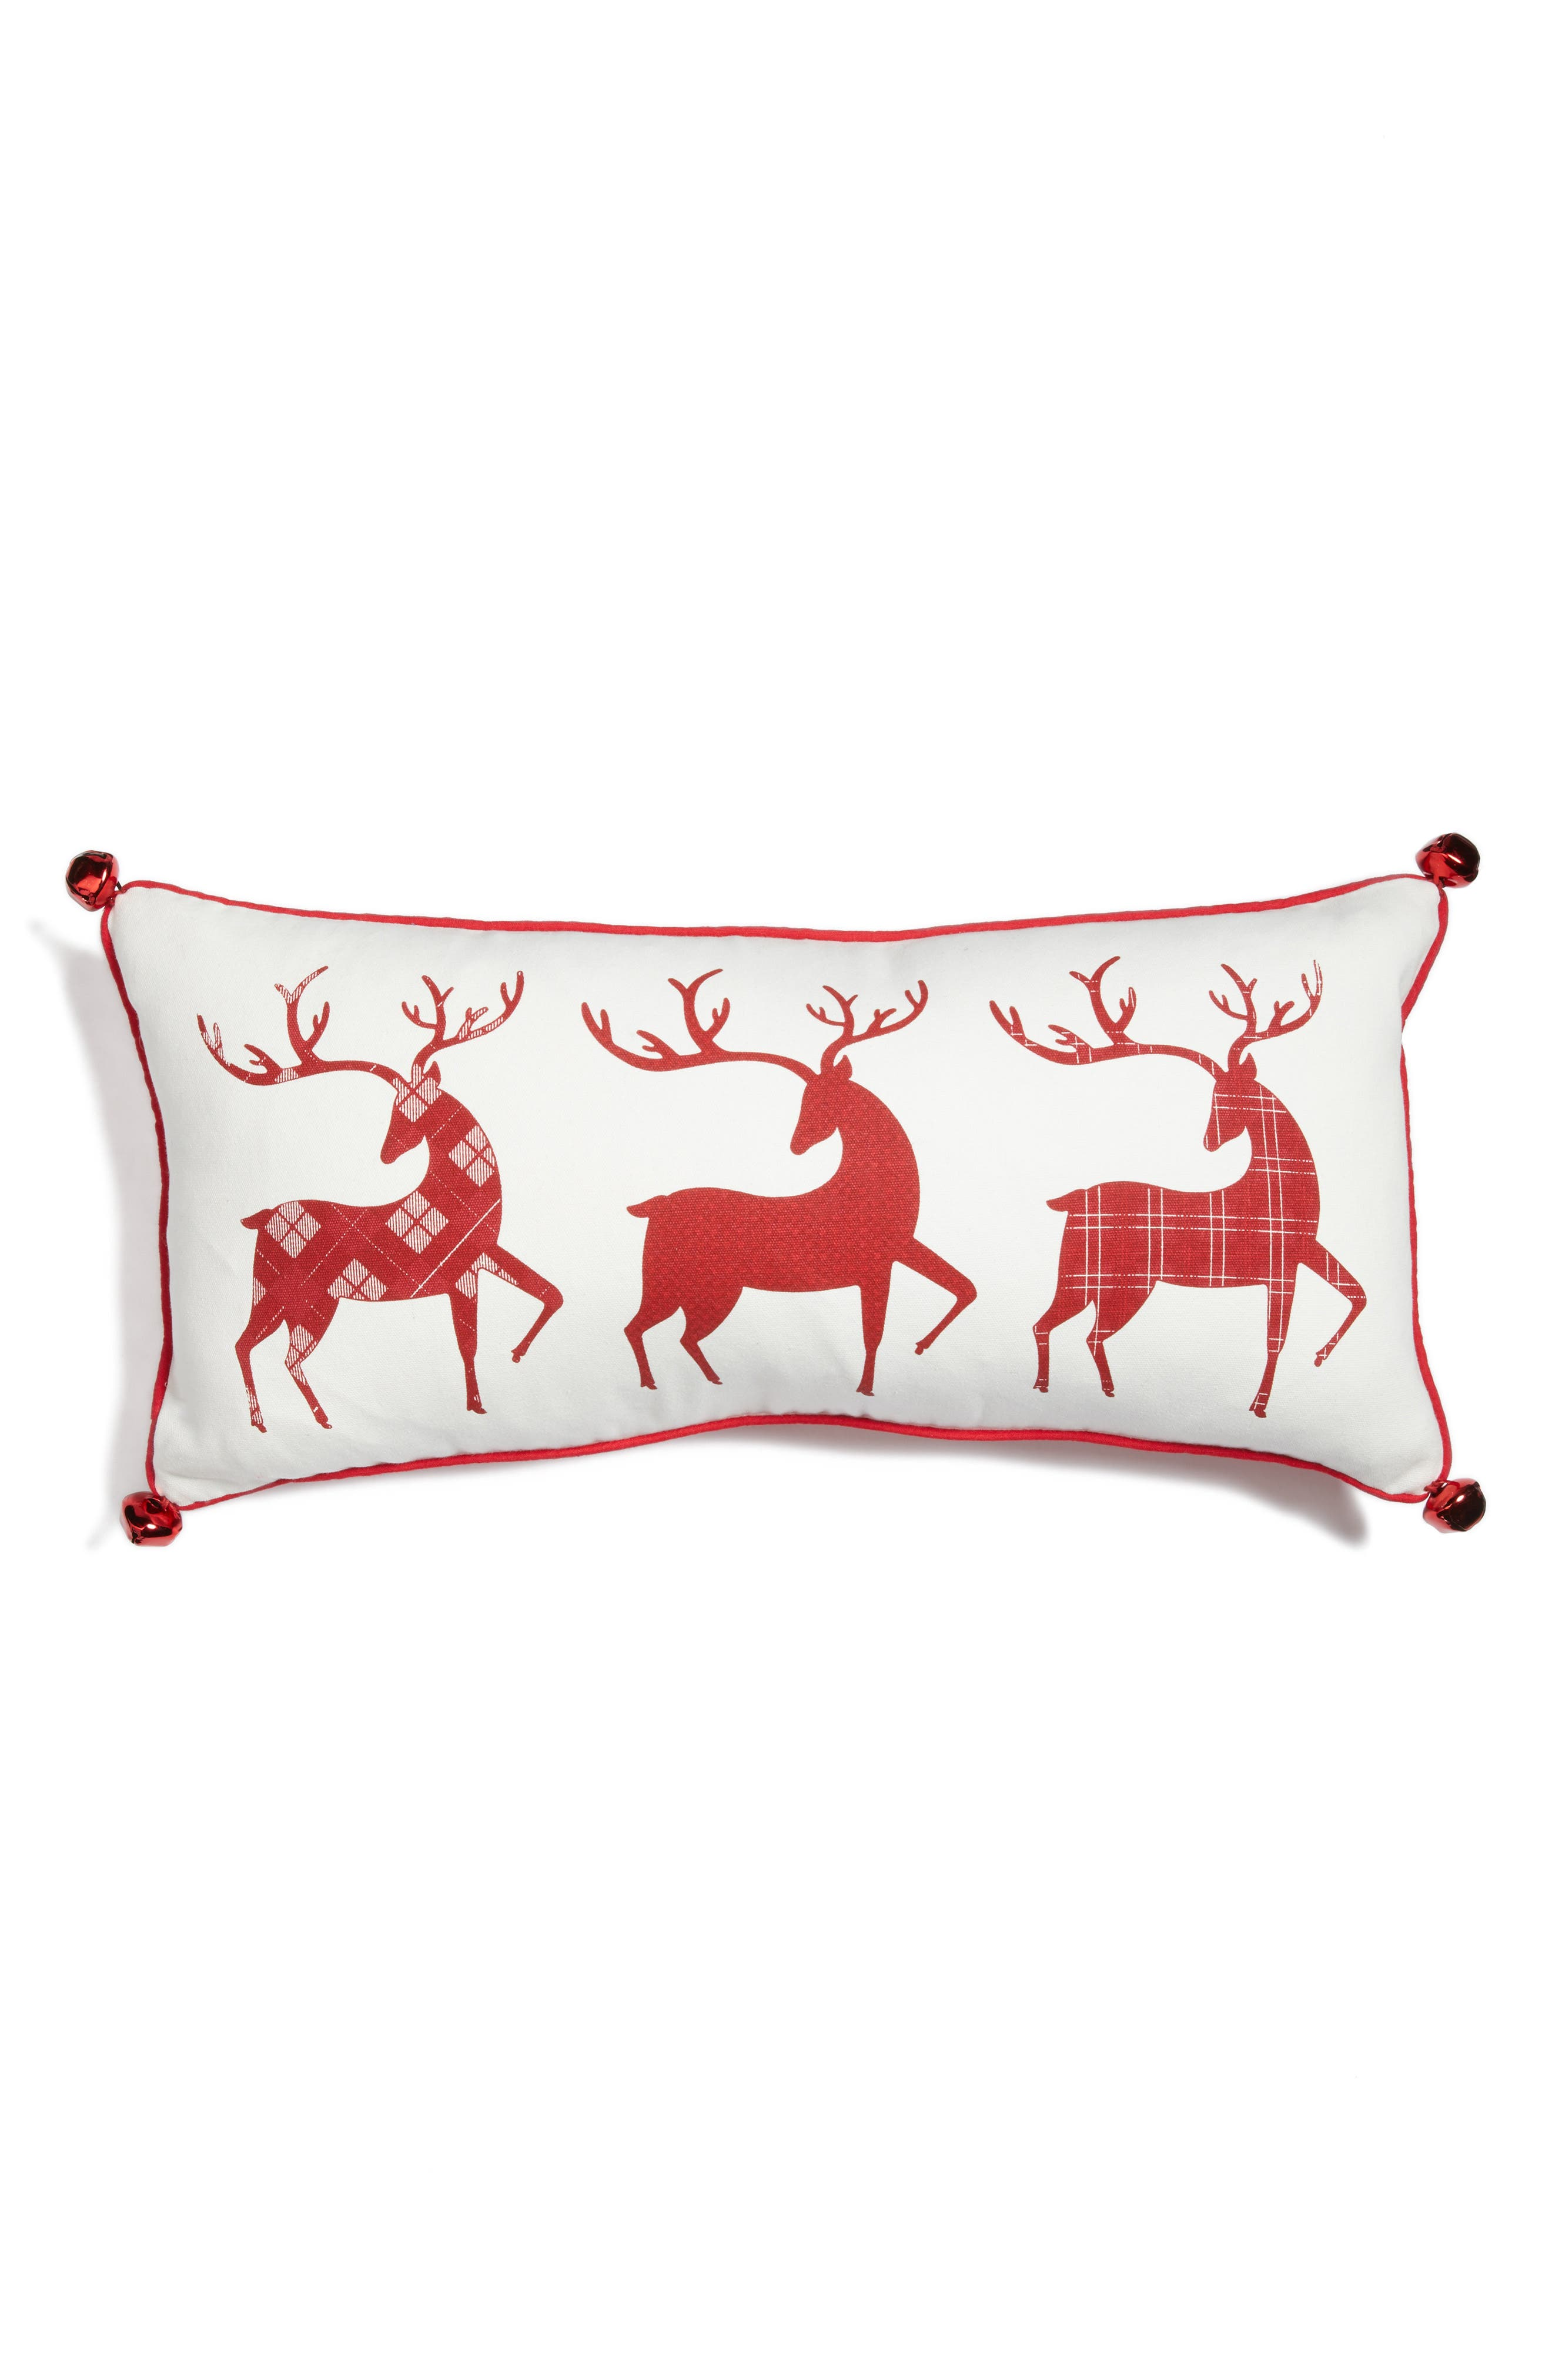 Three Reindeer Accent Pillow,                             Main thumbnail 1, color,                             100